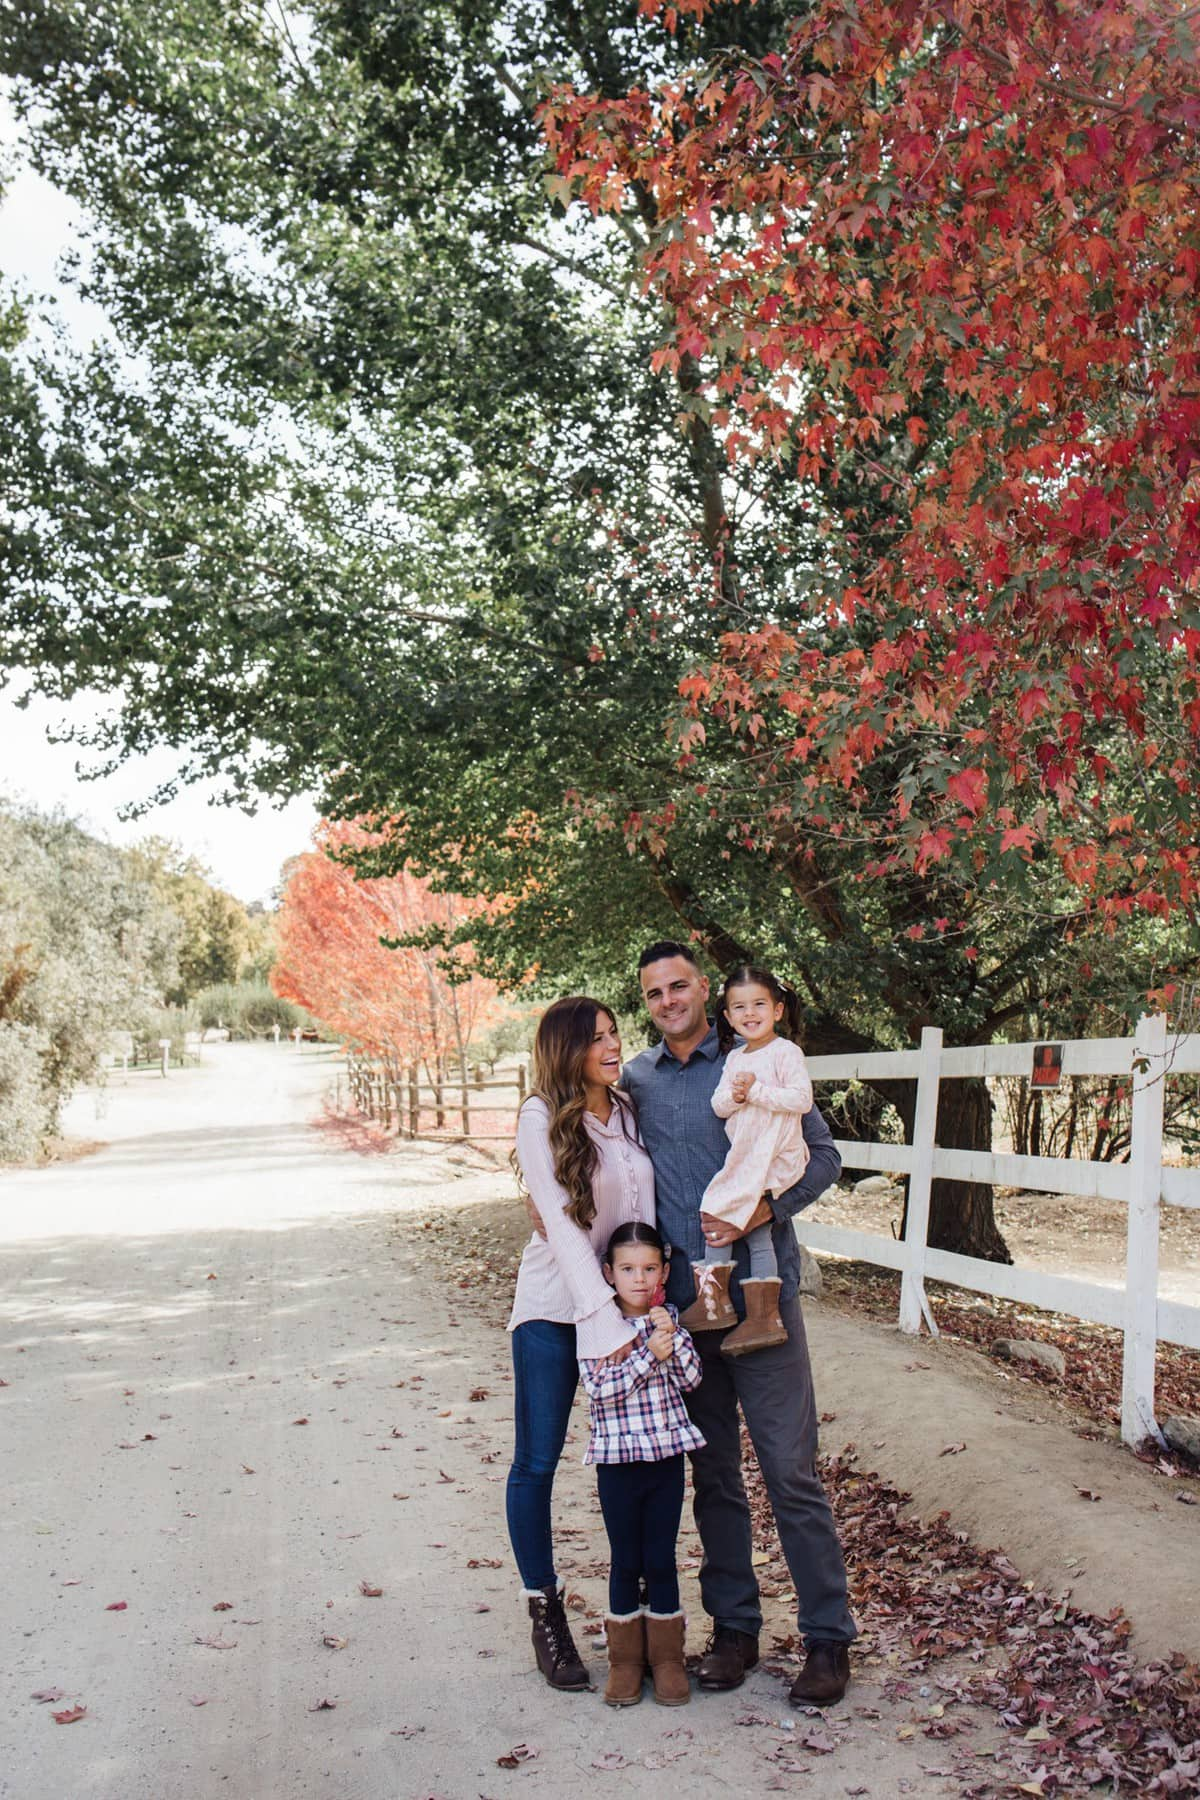 Wear to what for fall family photos recommend dress for autumn in 2019